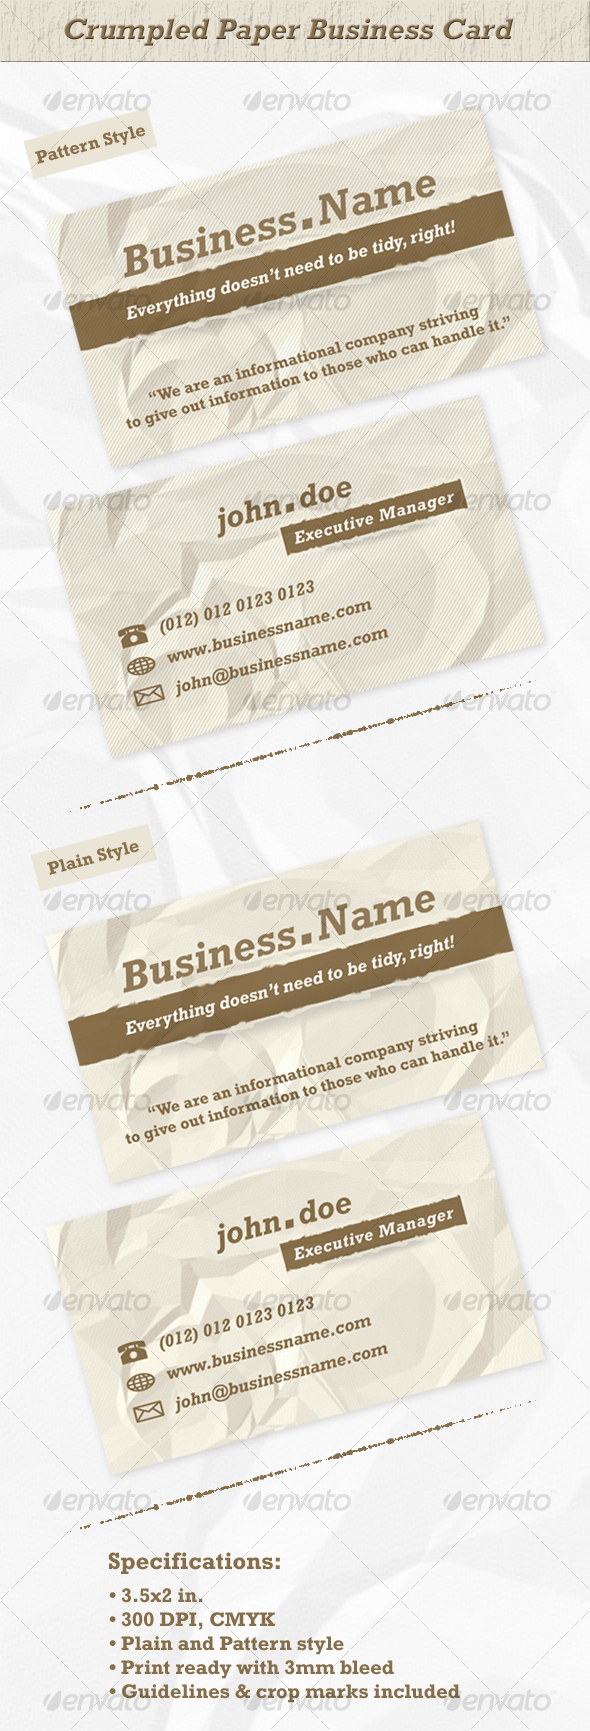 Crumpled Paper Business Card